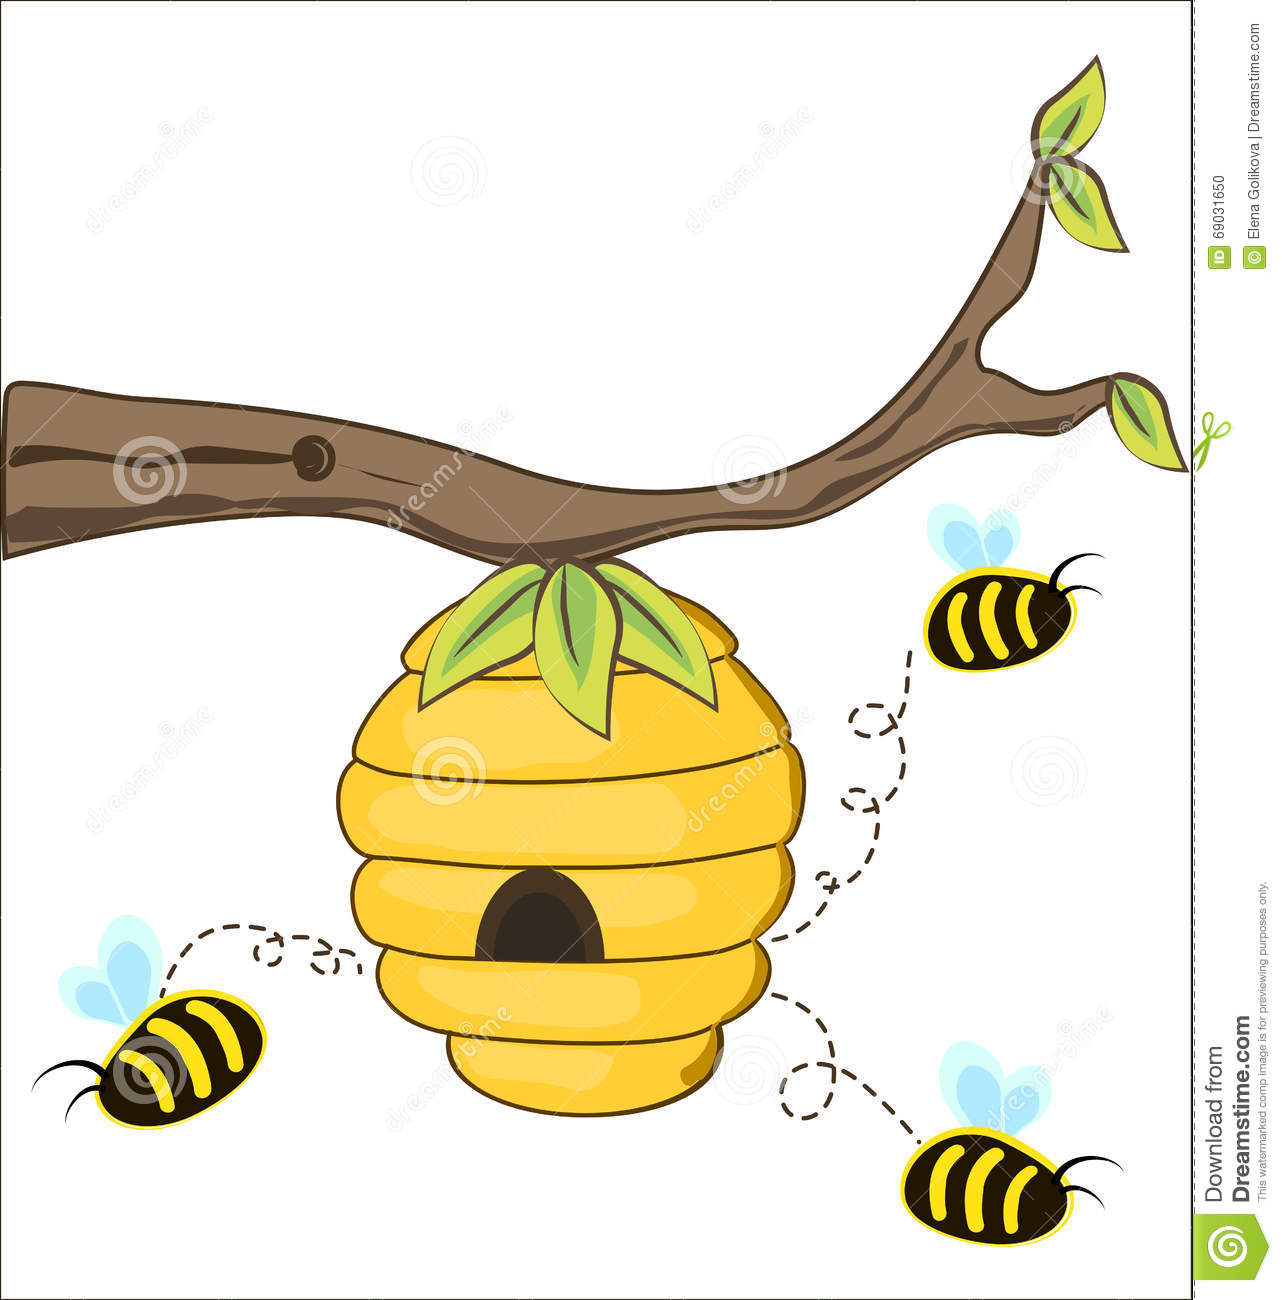 Beehive from tree clipart picture royalty free library Beehive Tree Branch Stock Illustrations – 60 Beehive Tree Branch ... picture royalty free library